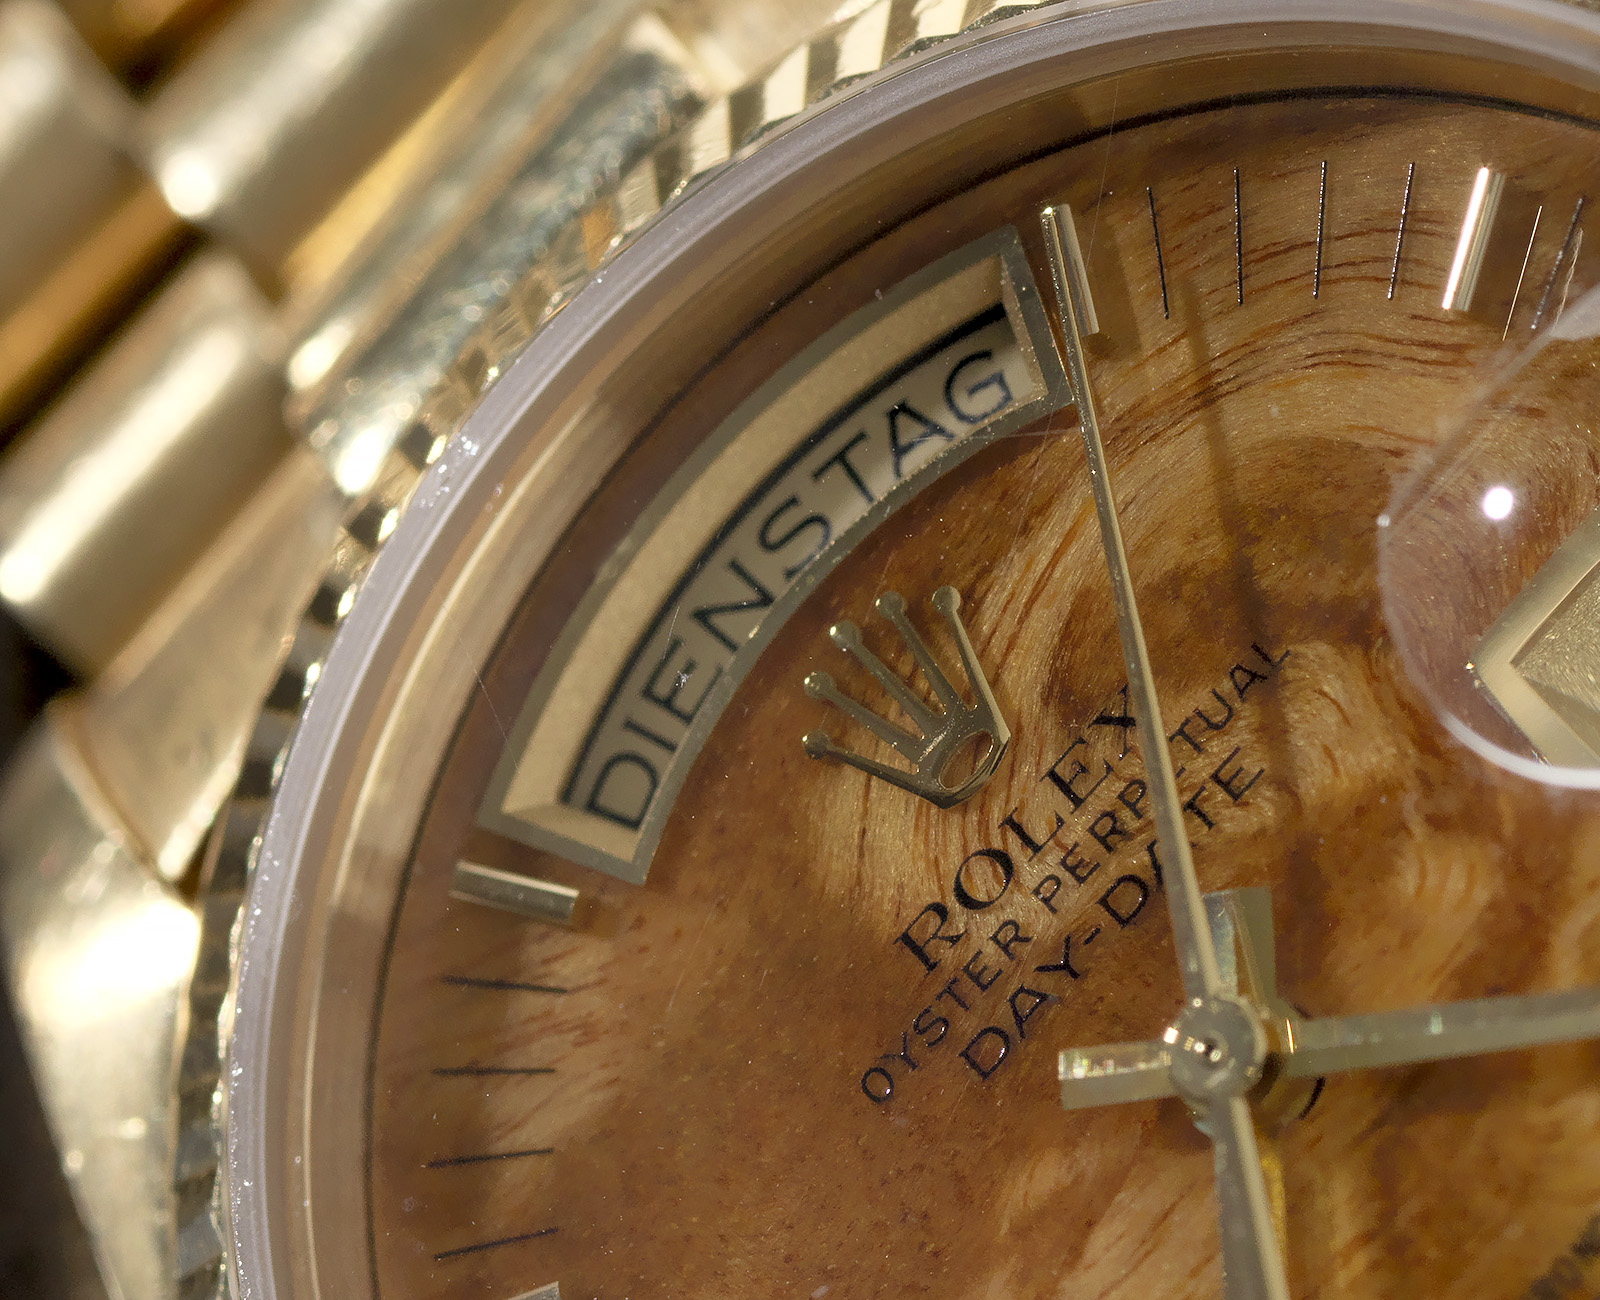 The Rolex Day-Date - King of Versatility